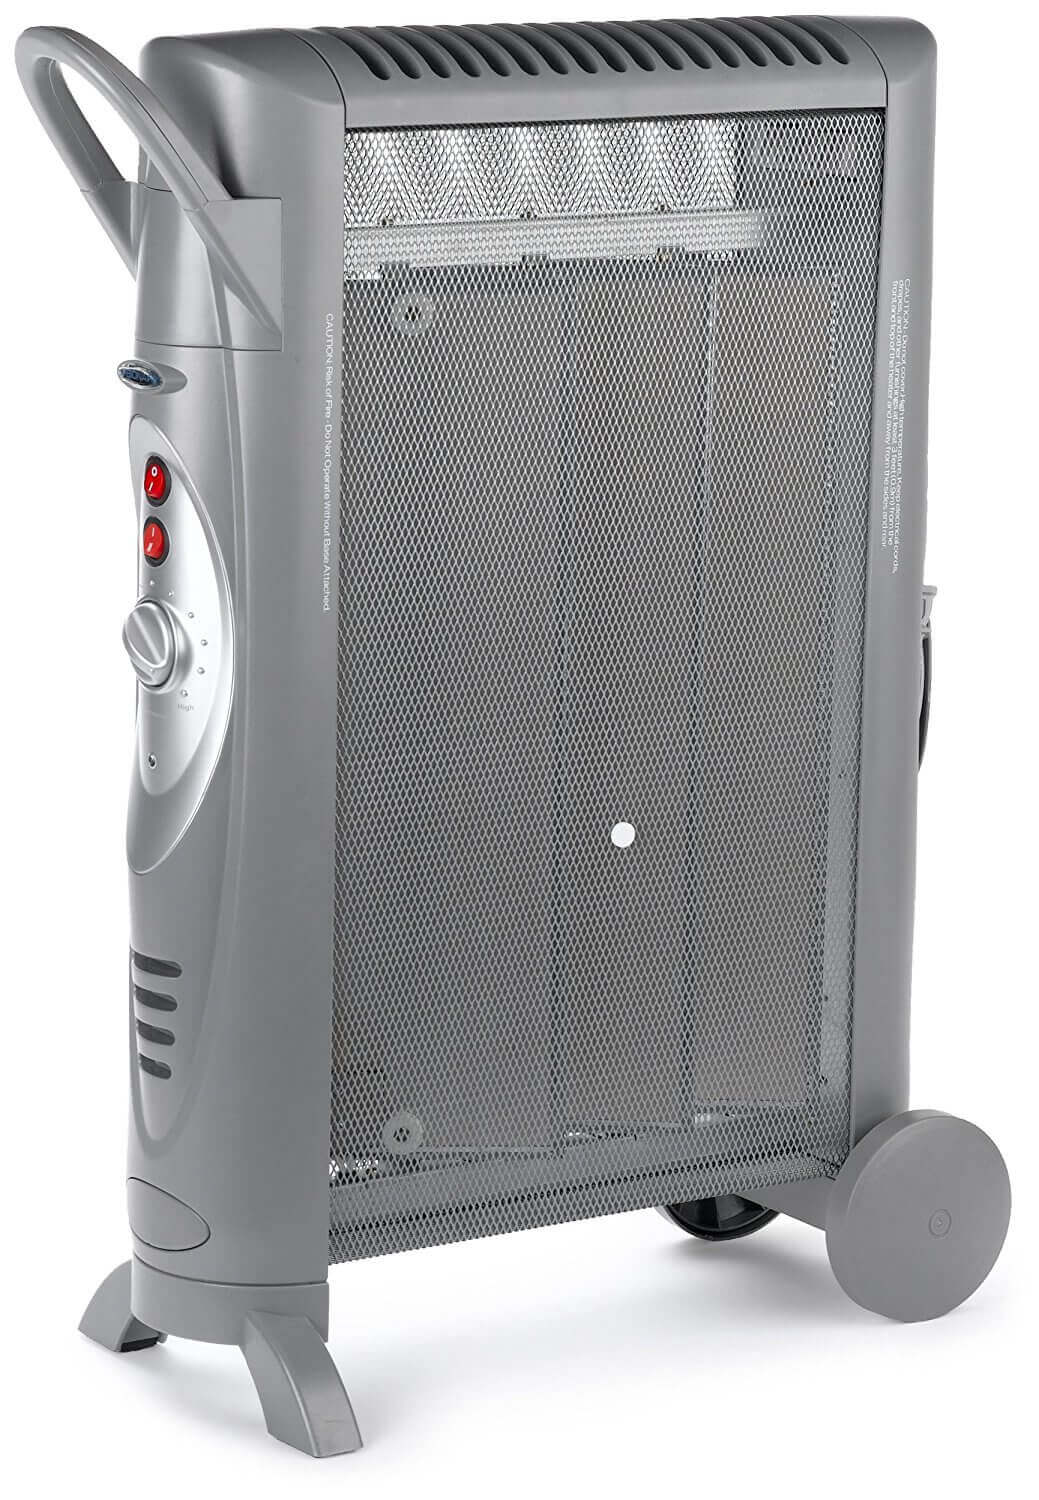 Best Quiet Space Heater Reviews and Buying Guide